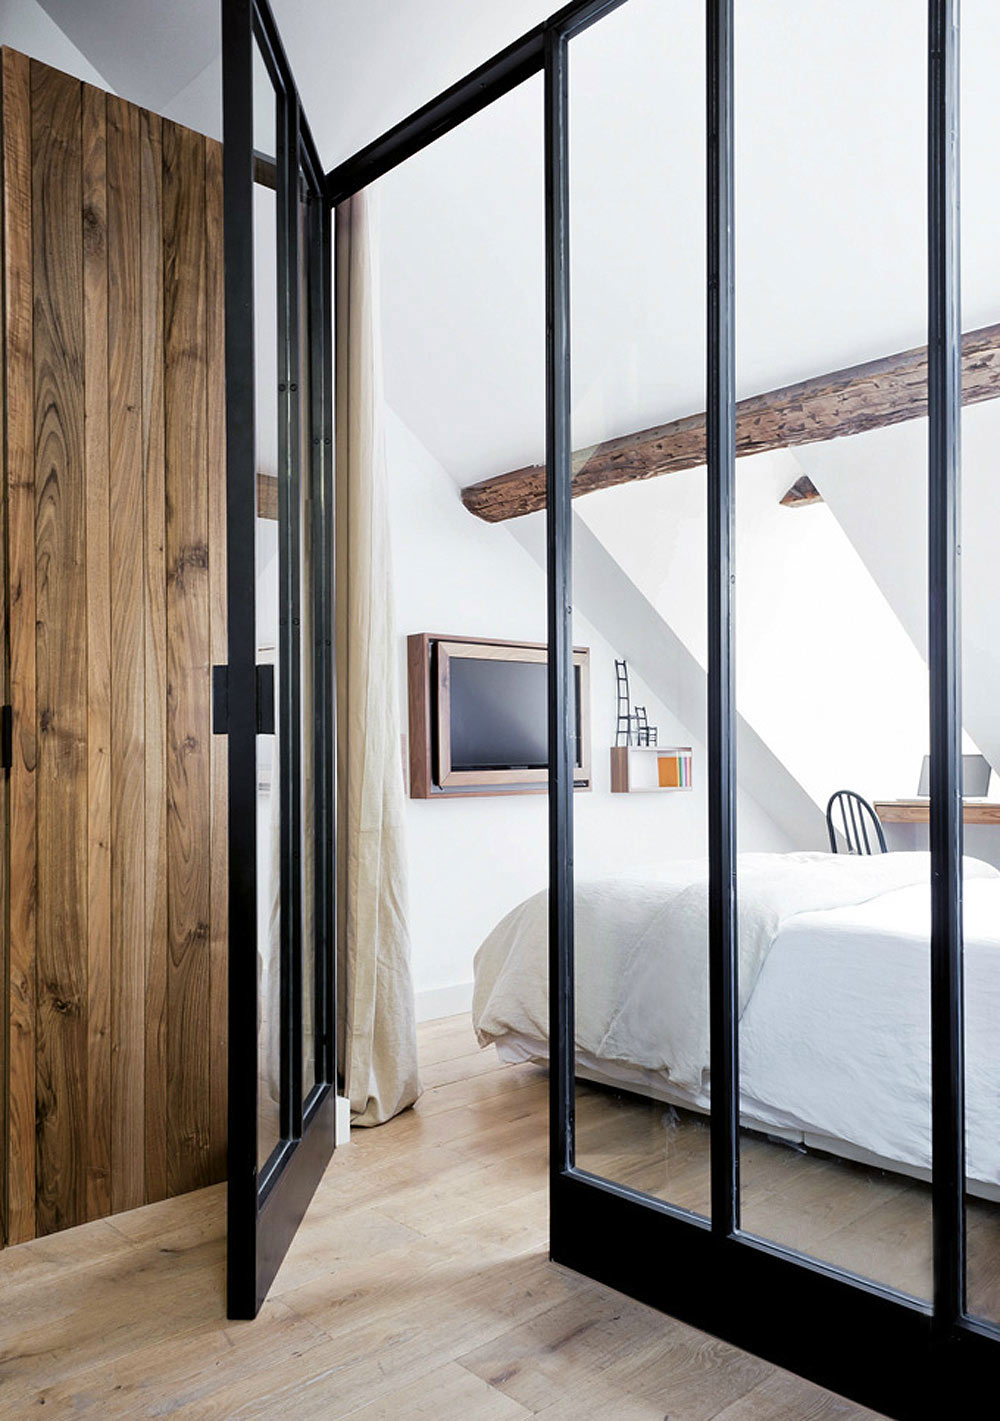 oracle, fox, sunday, sanctuary, minimal, industrial, raw, interior, natural, timber, lounge, room, bedroom